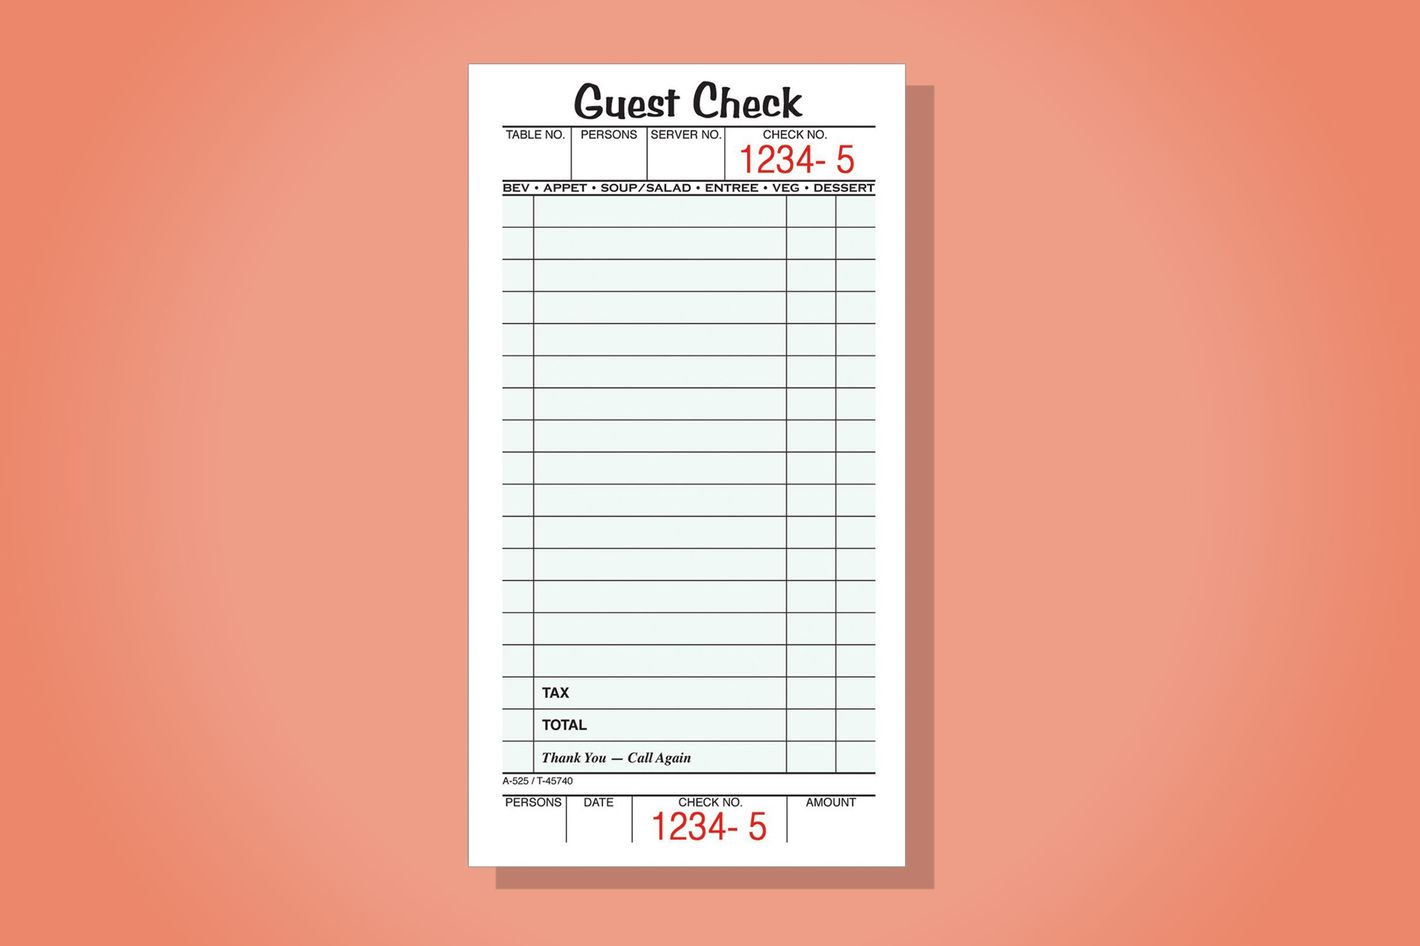 Adams Guest Check Pads, 10 pack